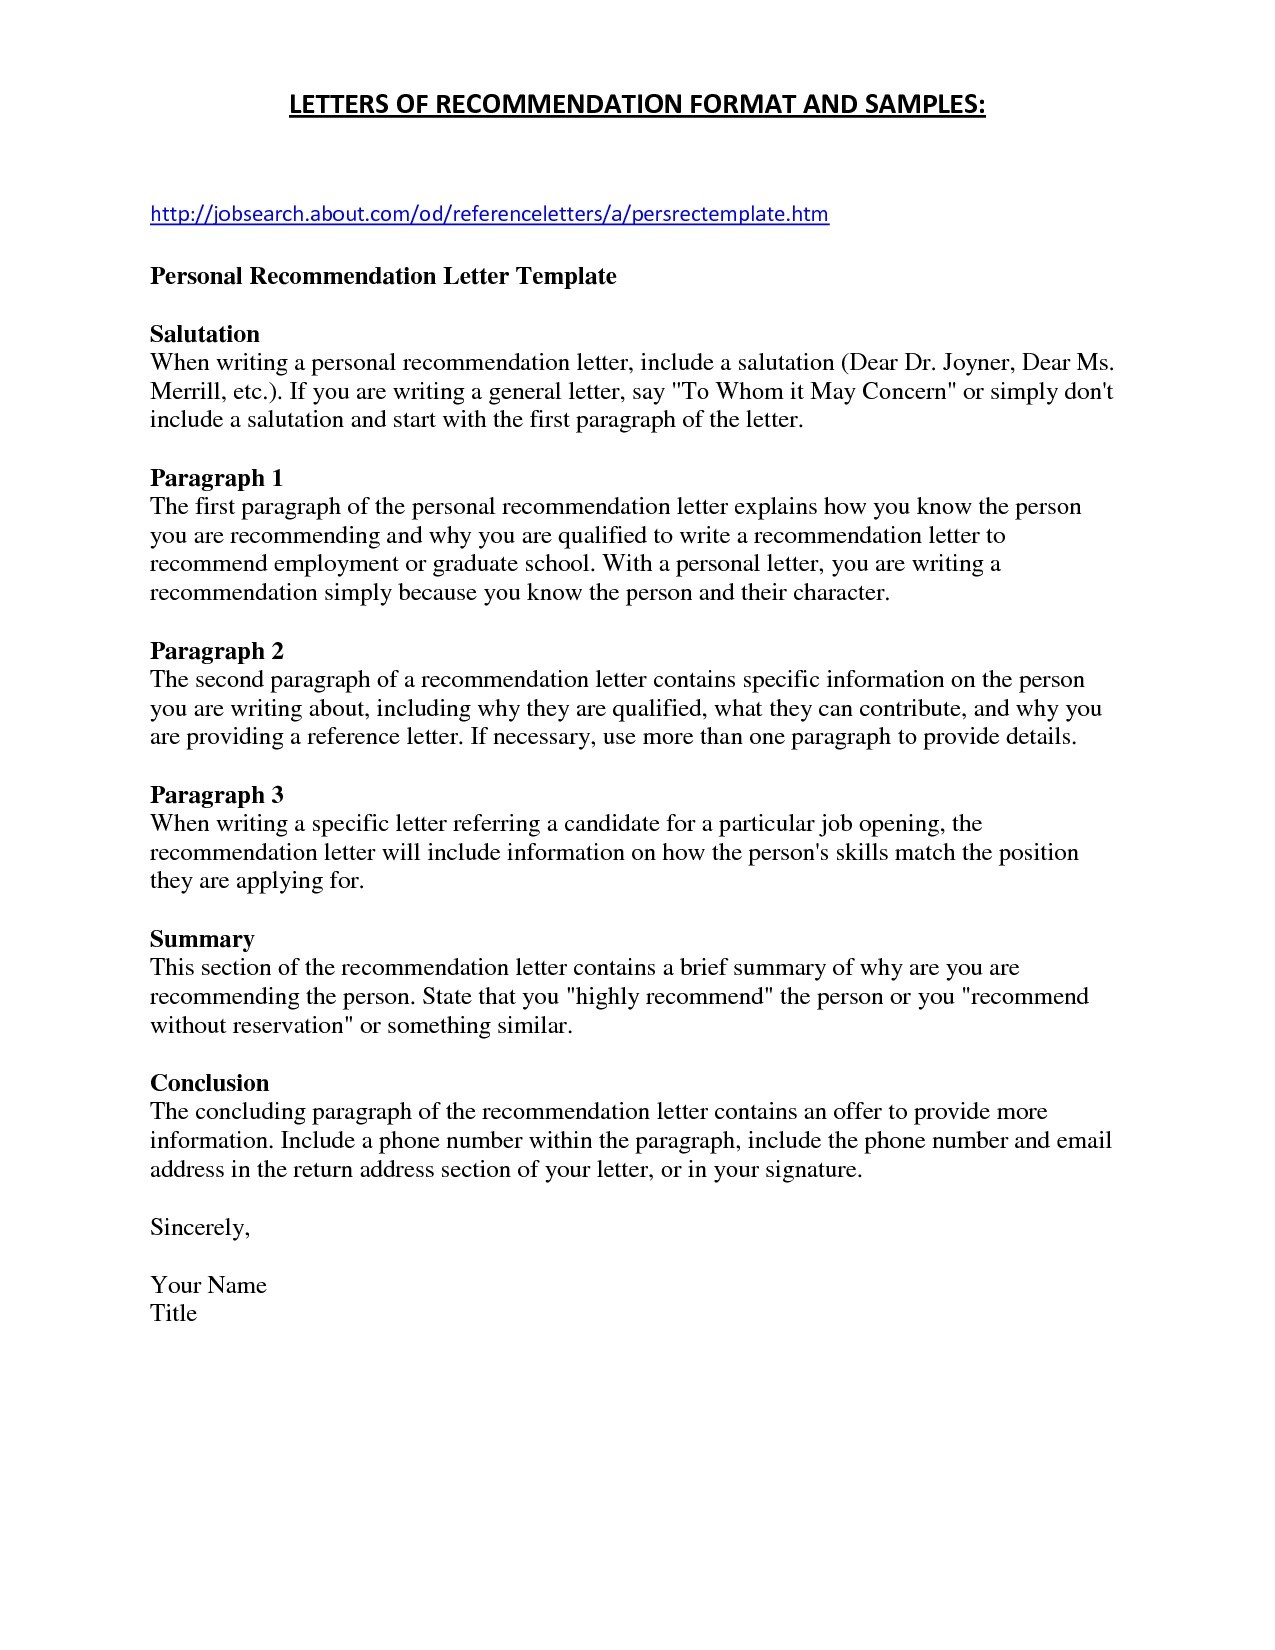 Employee Referral Letter Template - Sample Job Re Mendation Letter for Employee New Letter Re